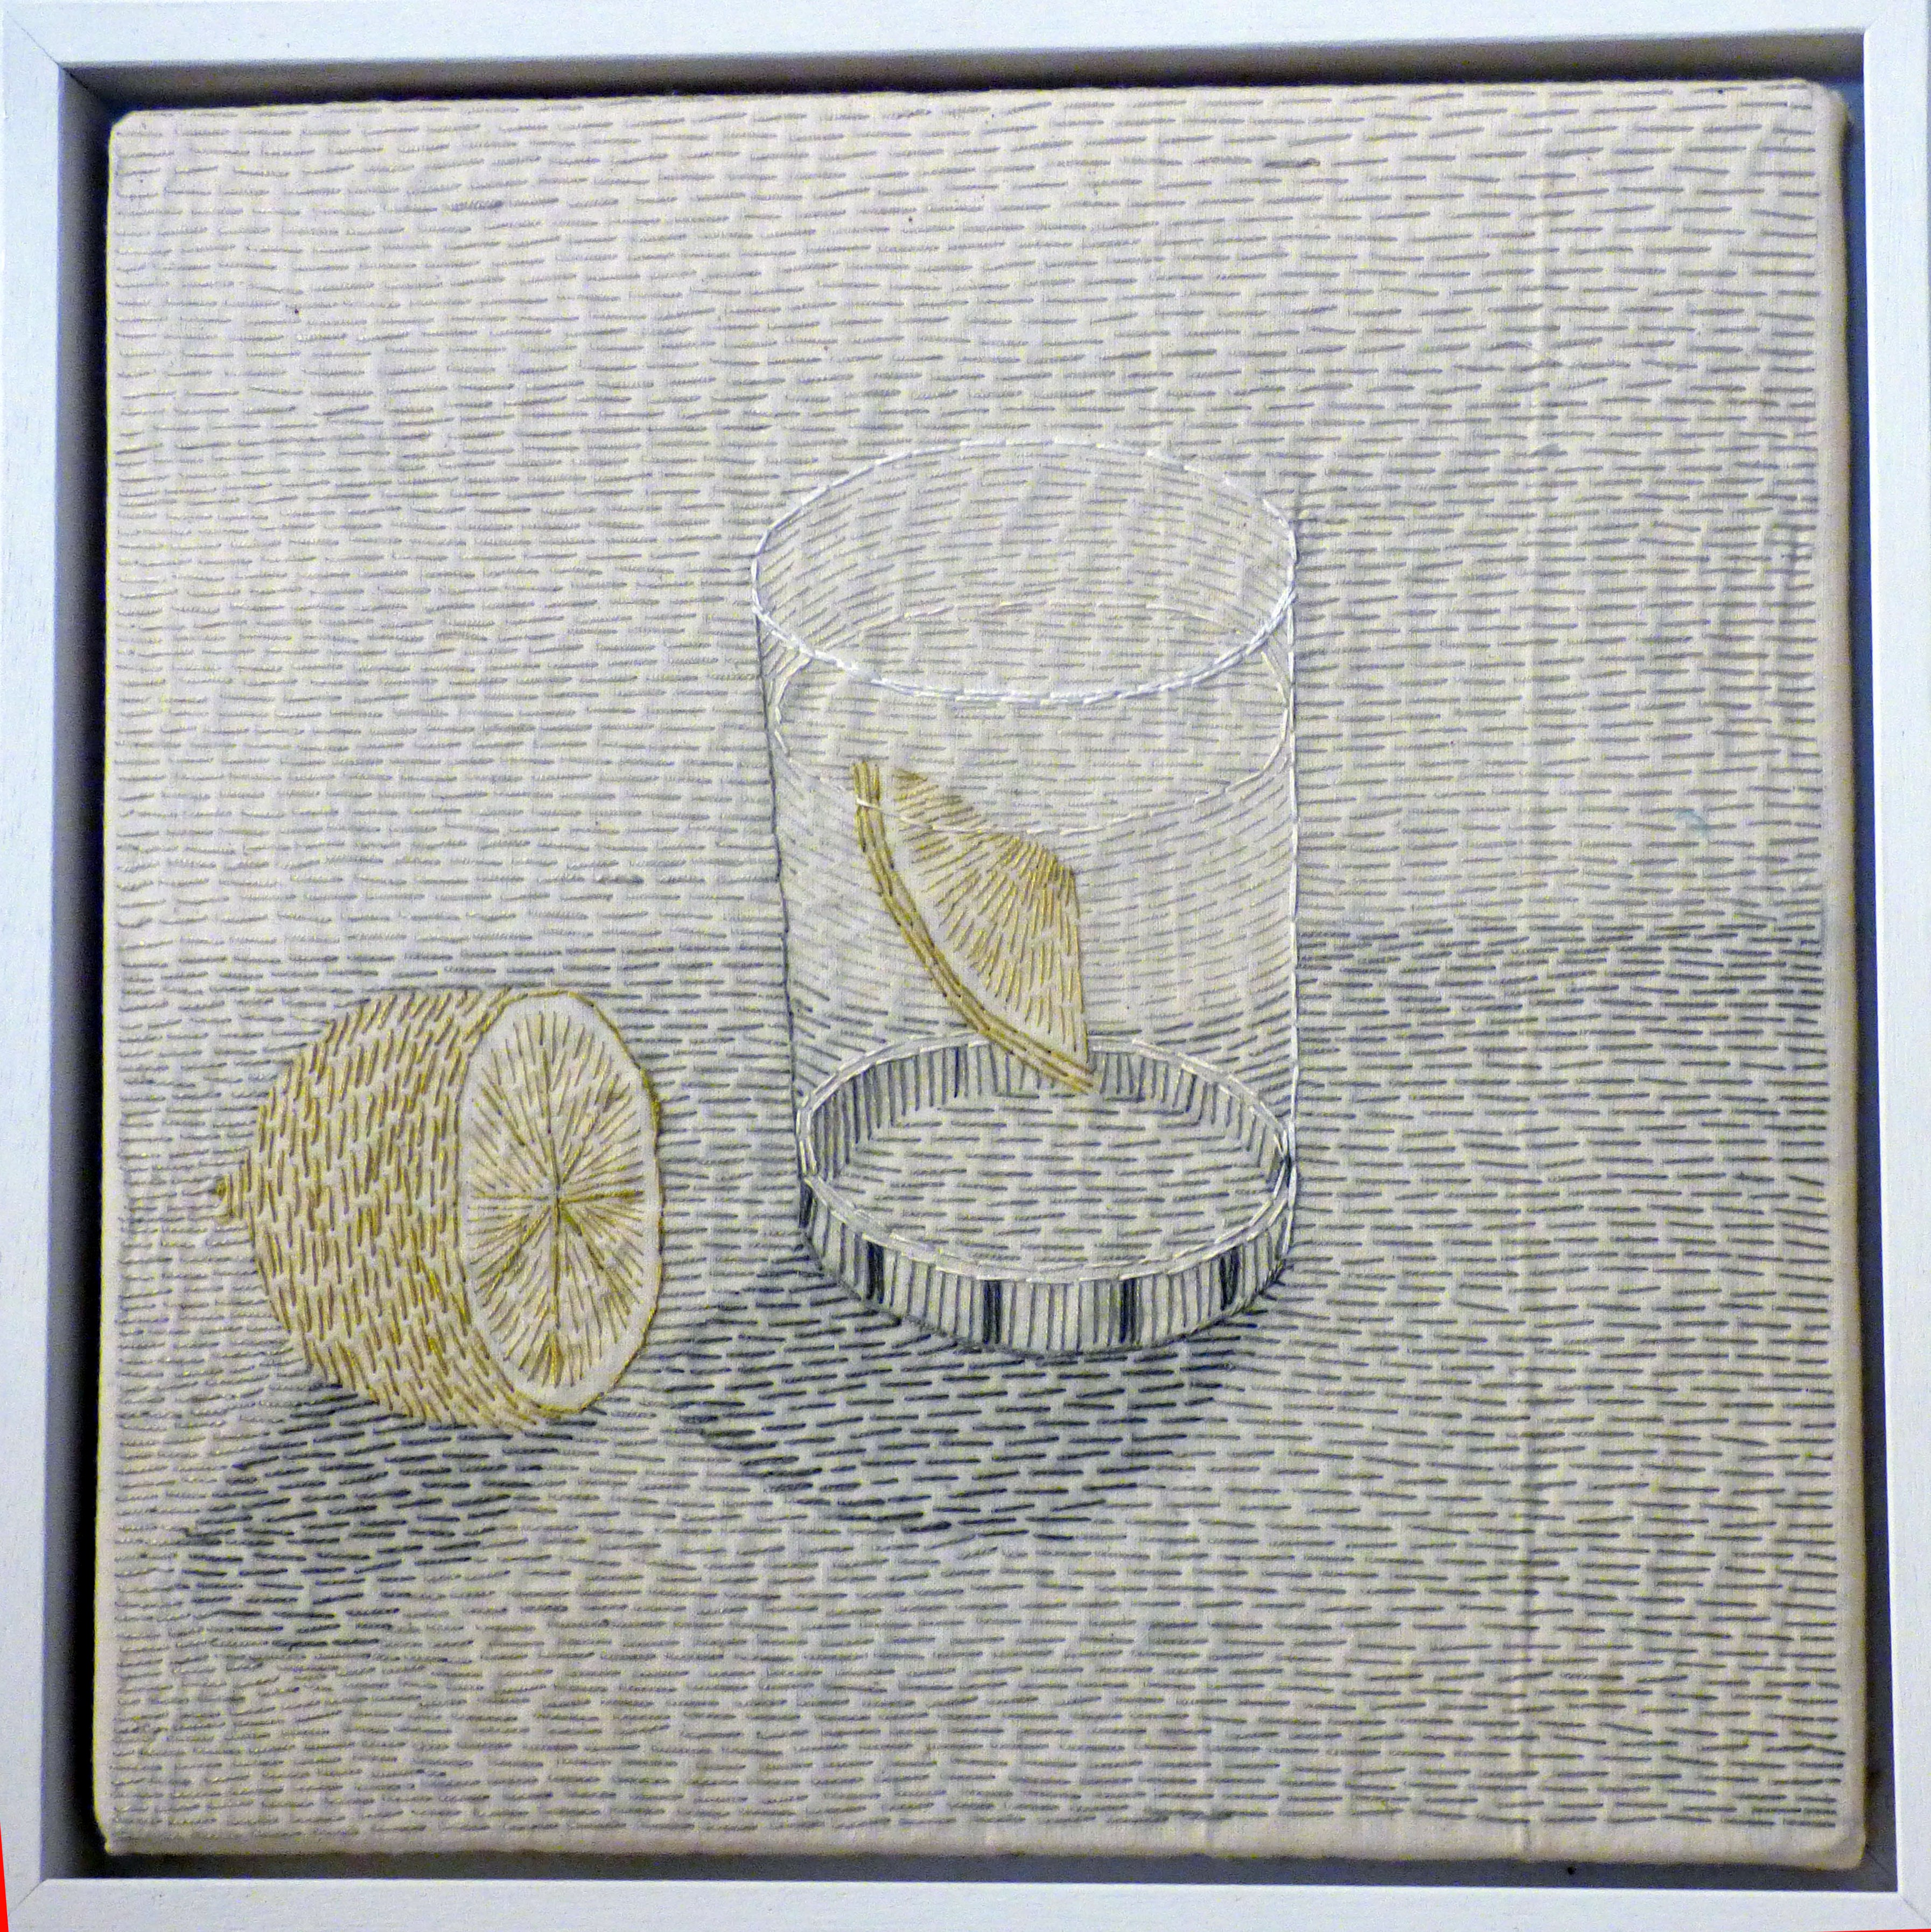 SIMPLE PLEASURES: GIN by Audrey Walker, hand stitch, 2014